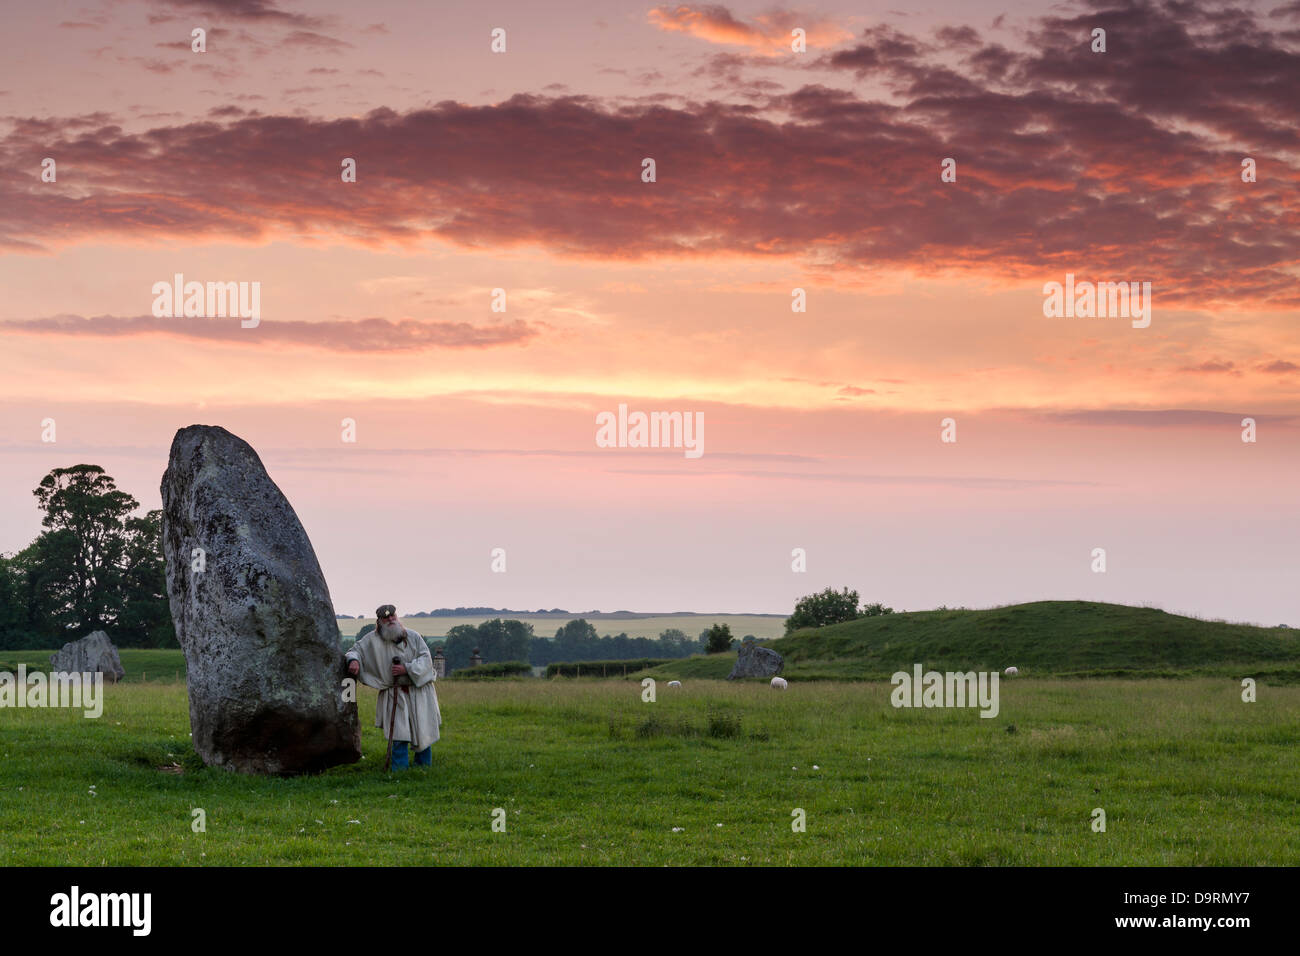 The 'Keeper of the Stones' - Avebury, Wiltshire. - Stock Image